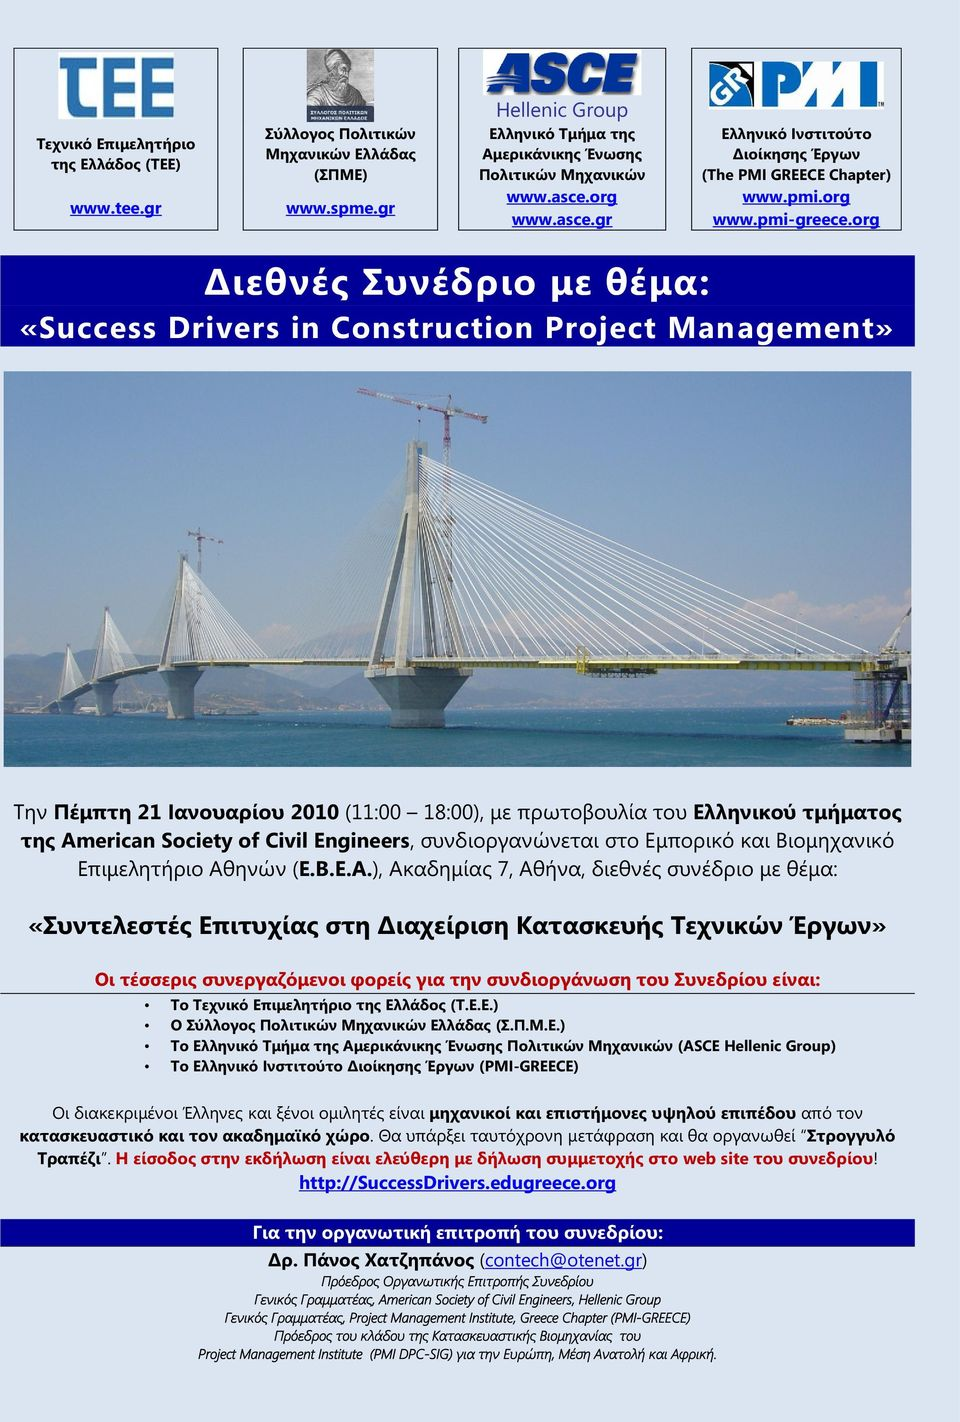 org Διεθνές Συνέδριο με θέμα: «Success Drivers in Construction Project Management» Την Πέμπτη 21 Ιανουαρίου 2010 (11:00 18:00), με πρωτοβουλία του Ελληνικού τμήματος της American Society of Civil